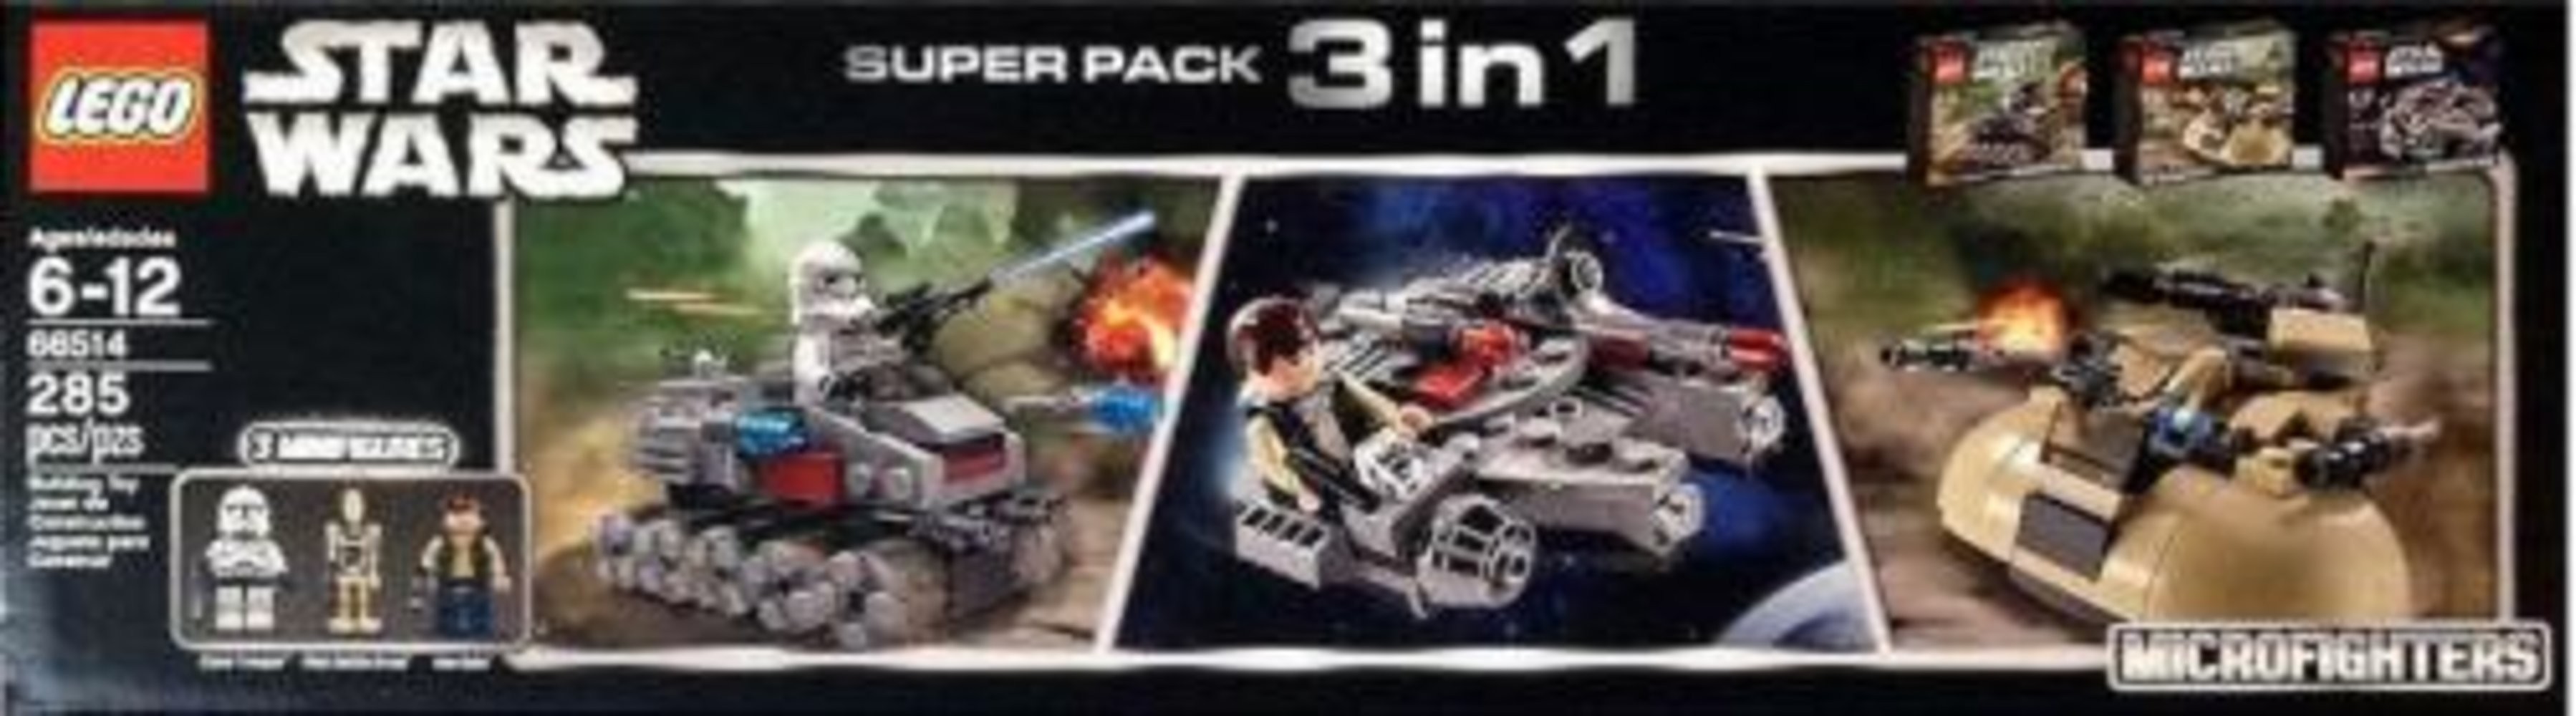 Star Wars Microfighters Super Pack 3 in 1 (75028, 75029, 75030)